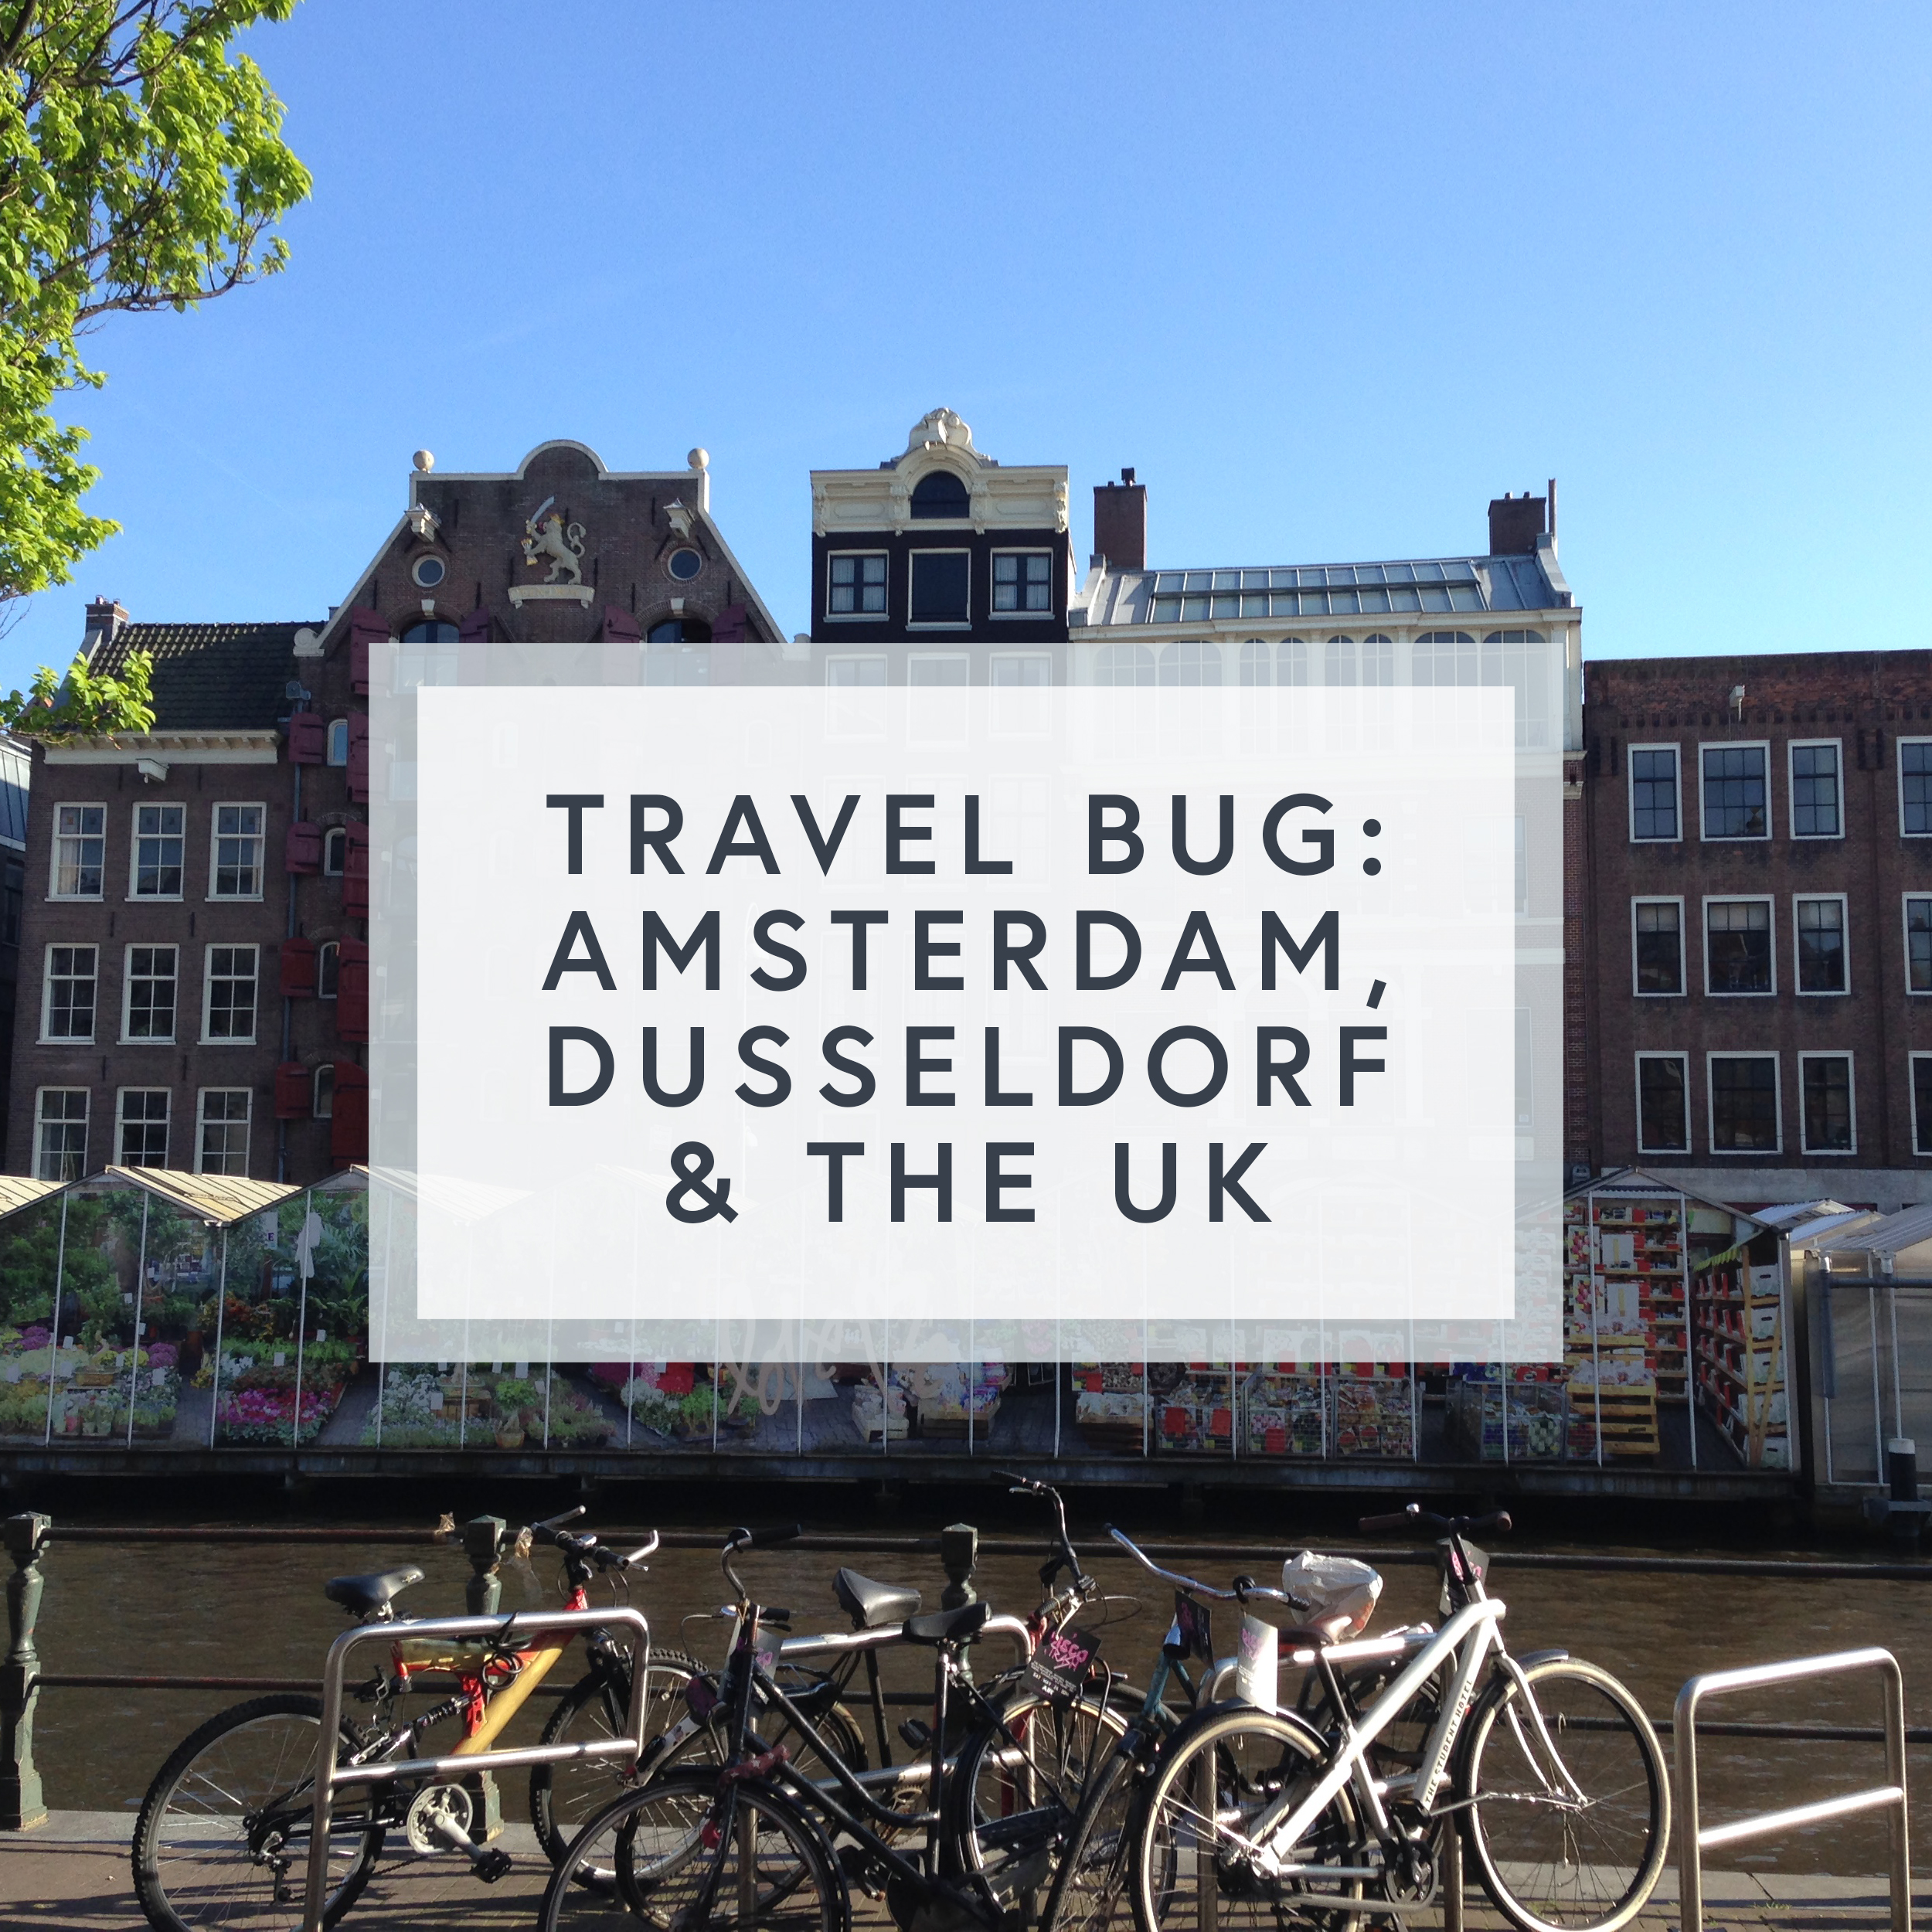 My first weekend away was exploring Amsterdam, so many canals, bikes, flower markets and amazing architecture.